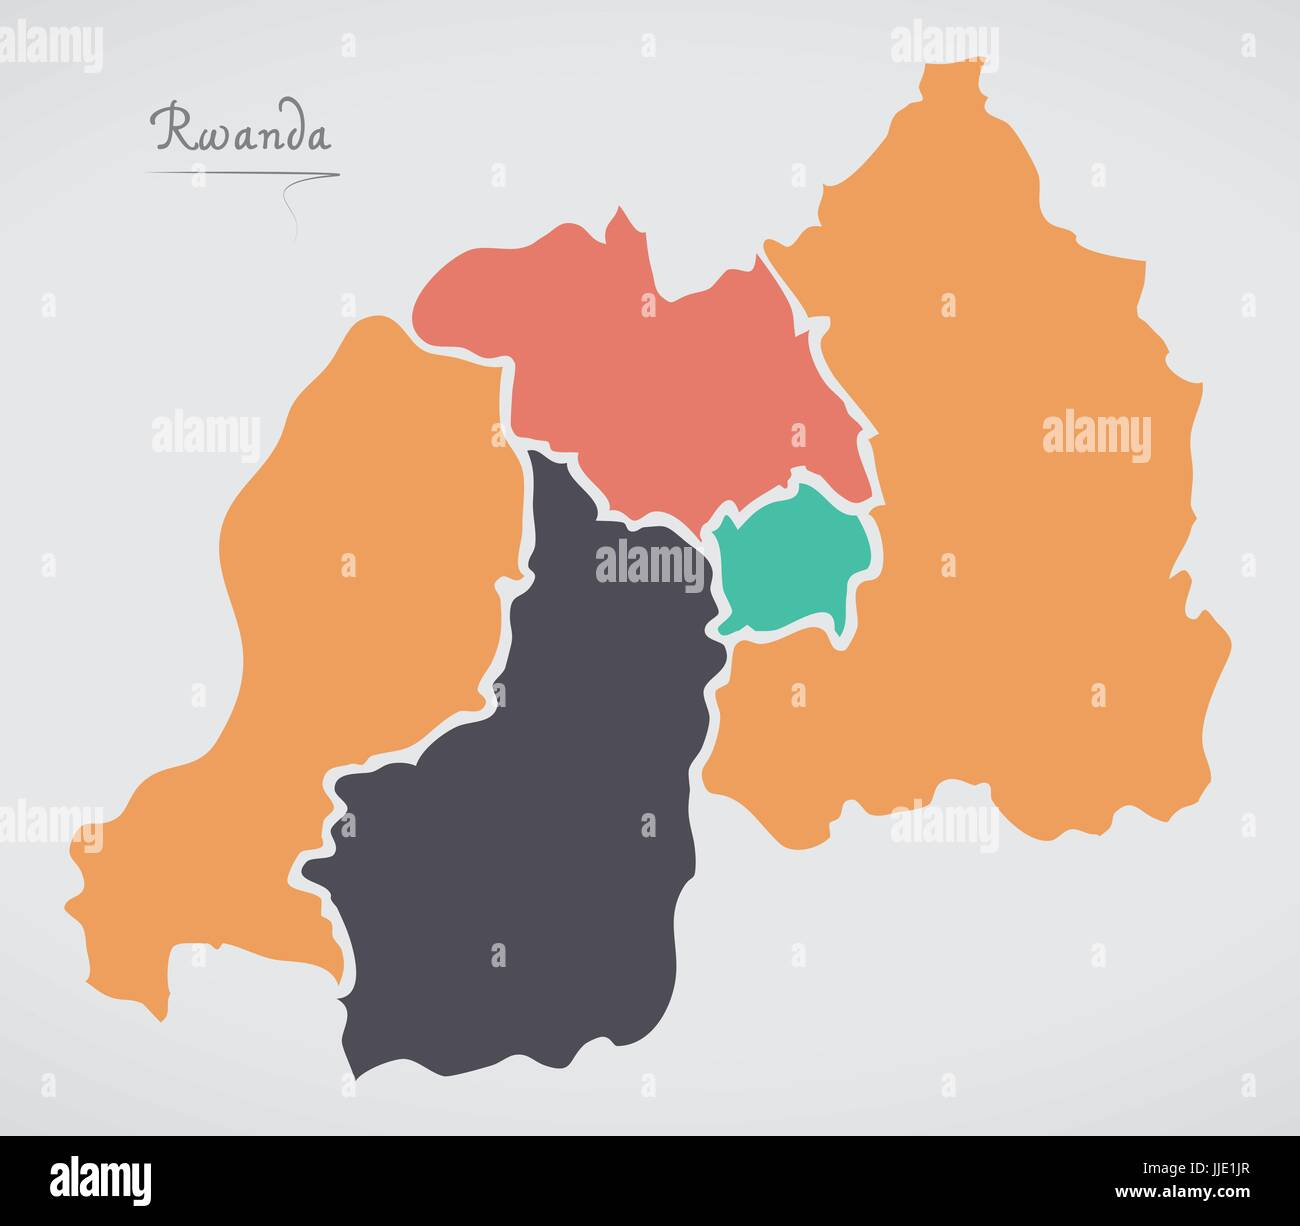 Rwanda Map with states and modern round shapes - Stock Vector